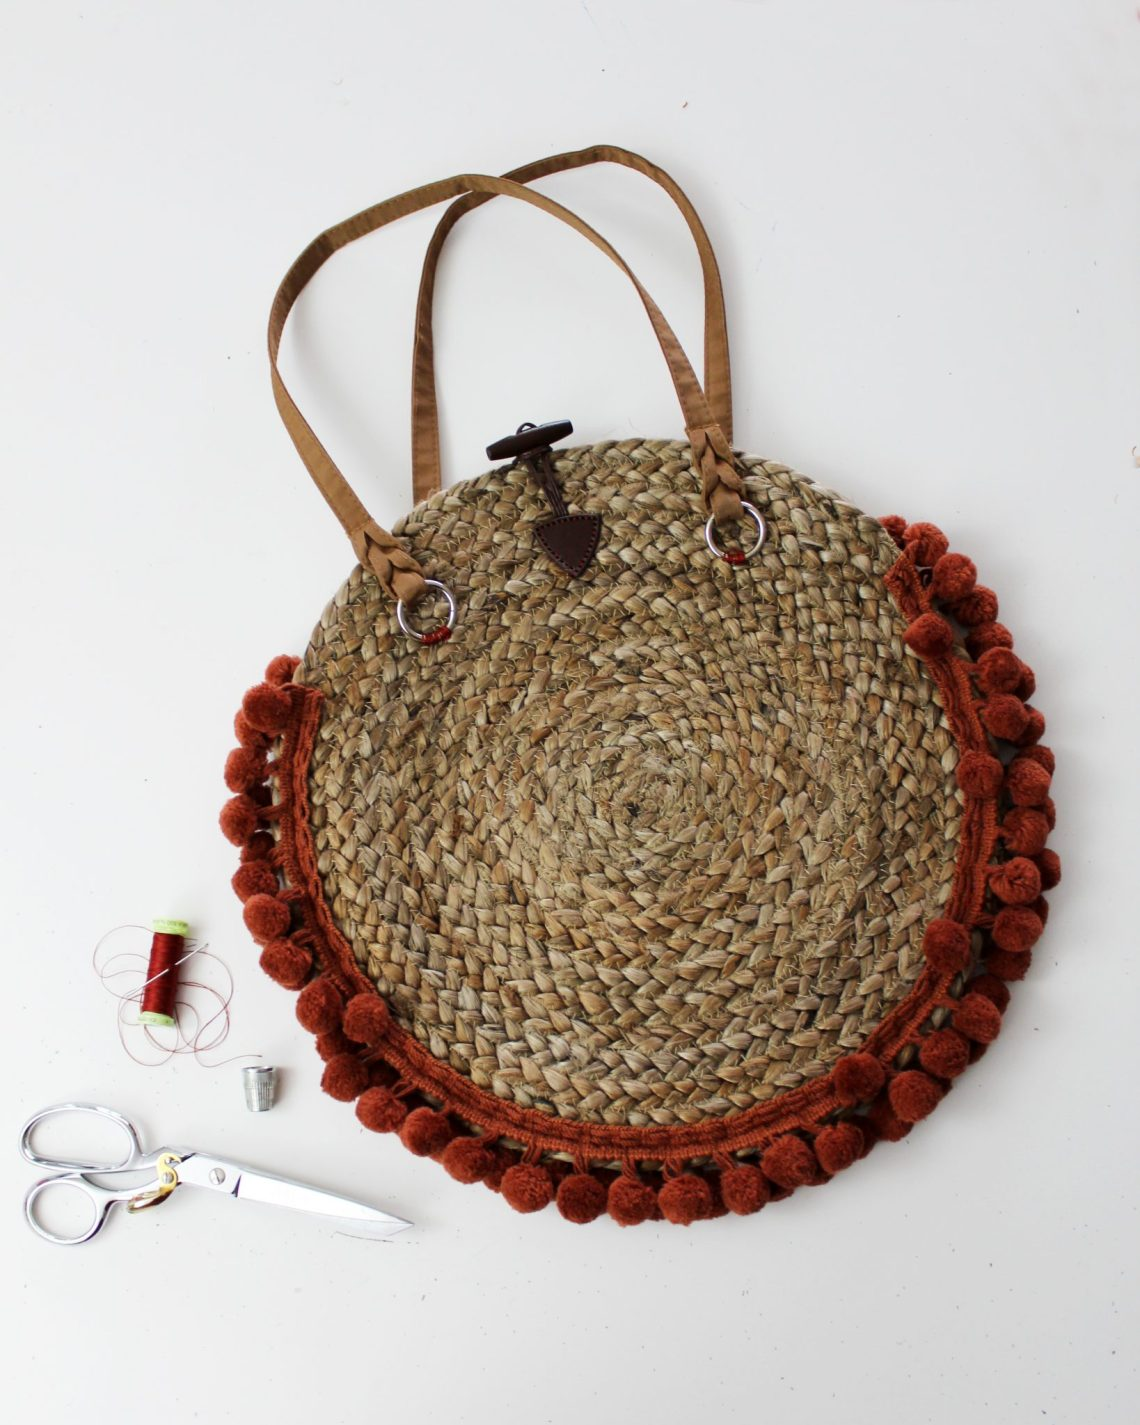 How to make a woven purse from a straw charging plate